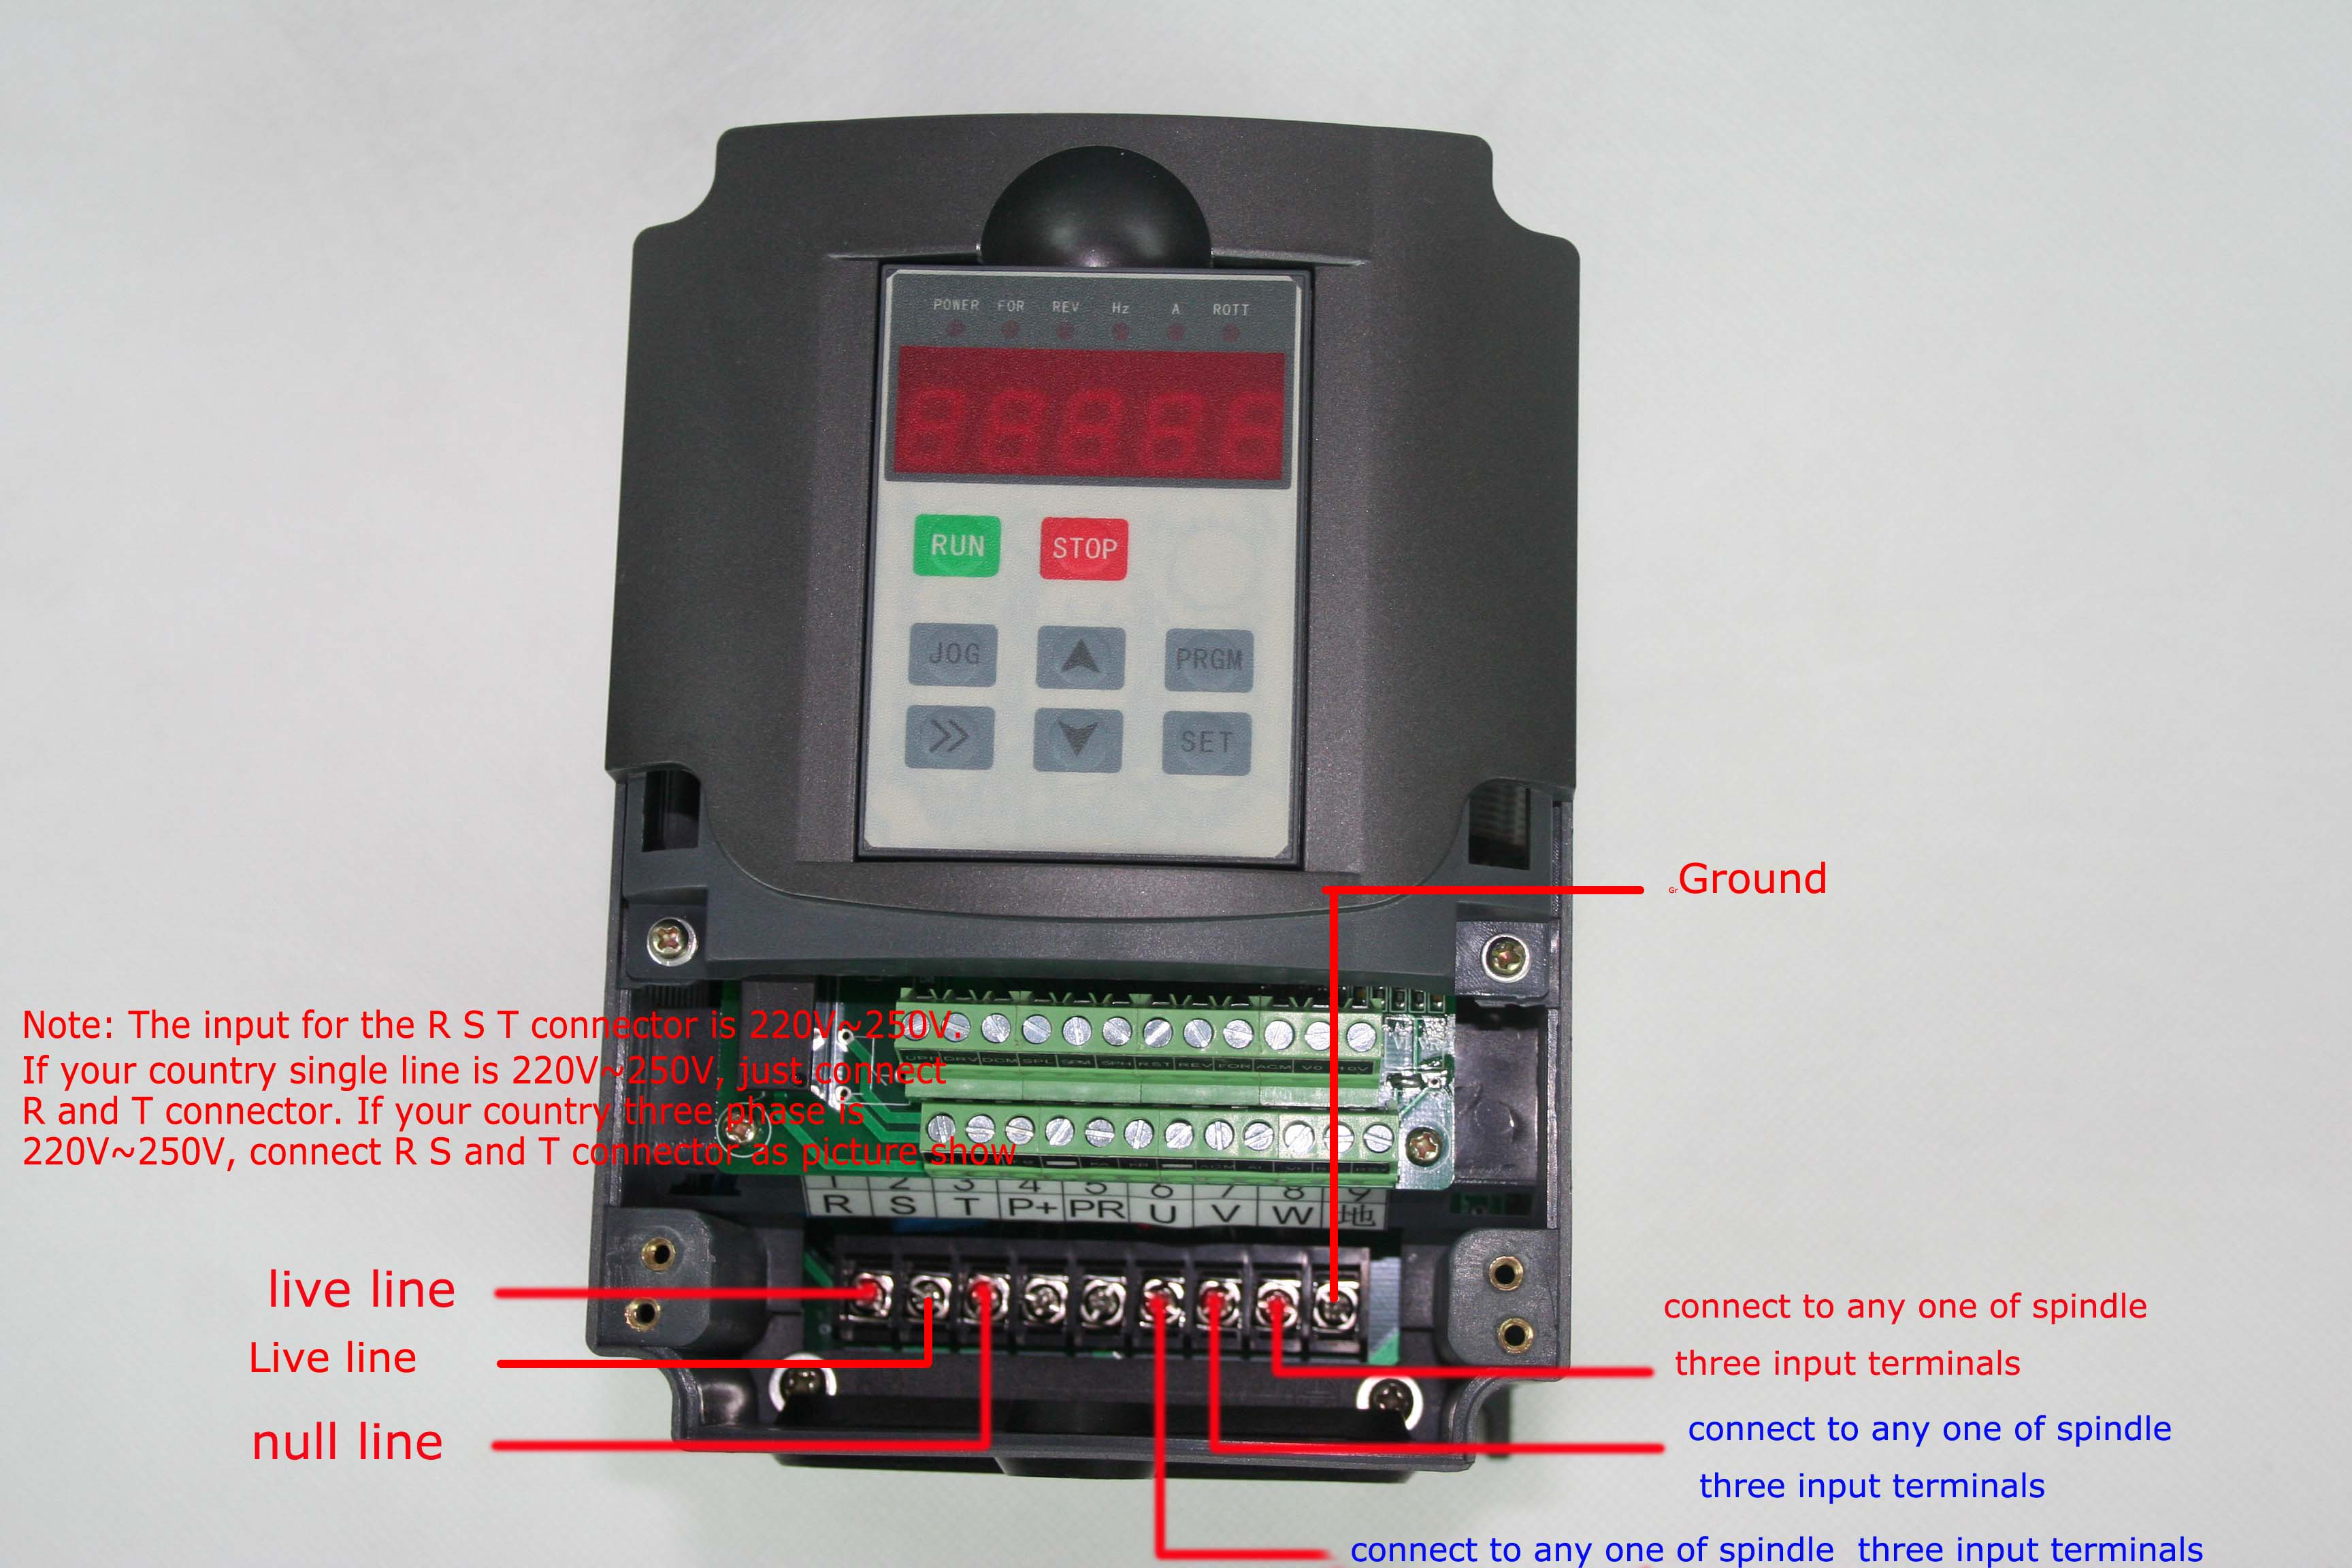 Spindle Wiring Diagram Library Chinese Motor Huanyang Vfd Settings And Manual Here Archive Cnczonecom